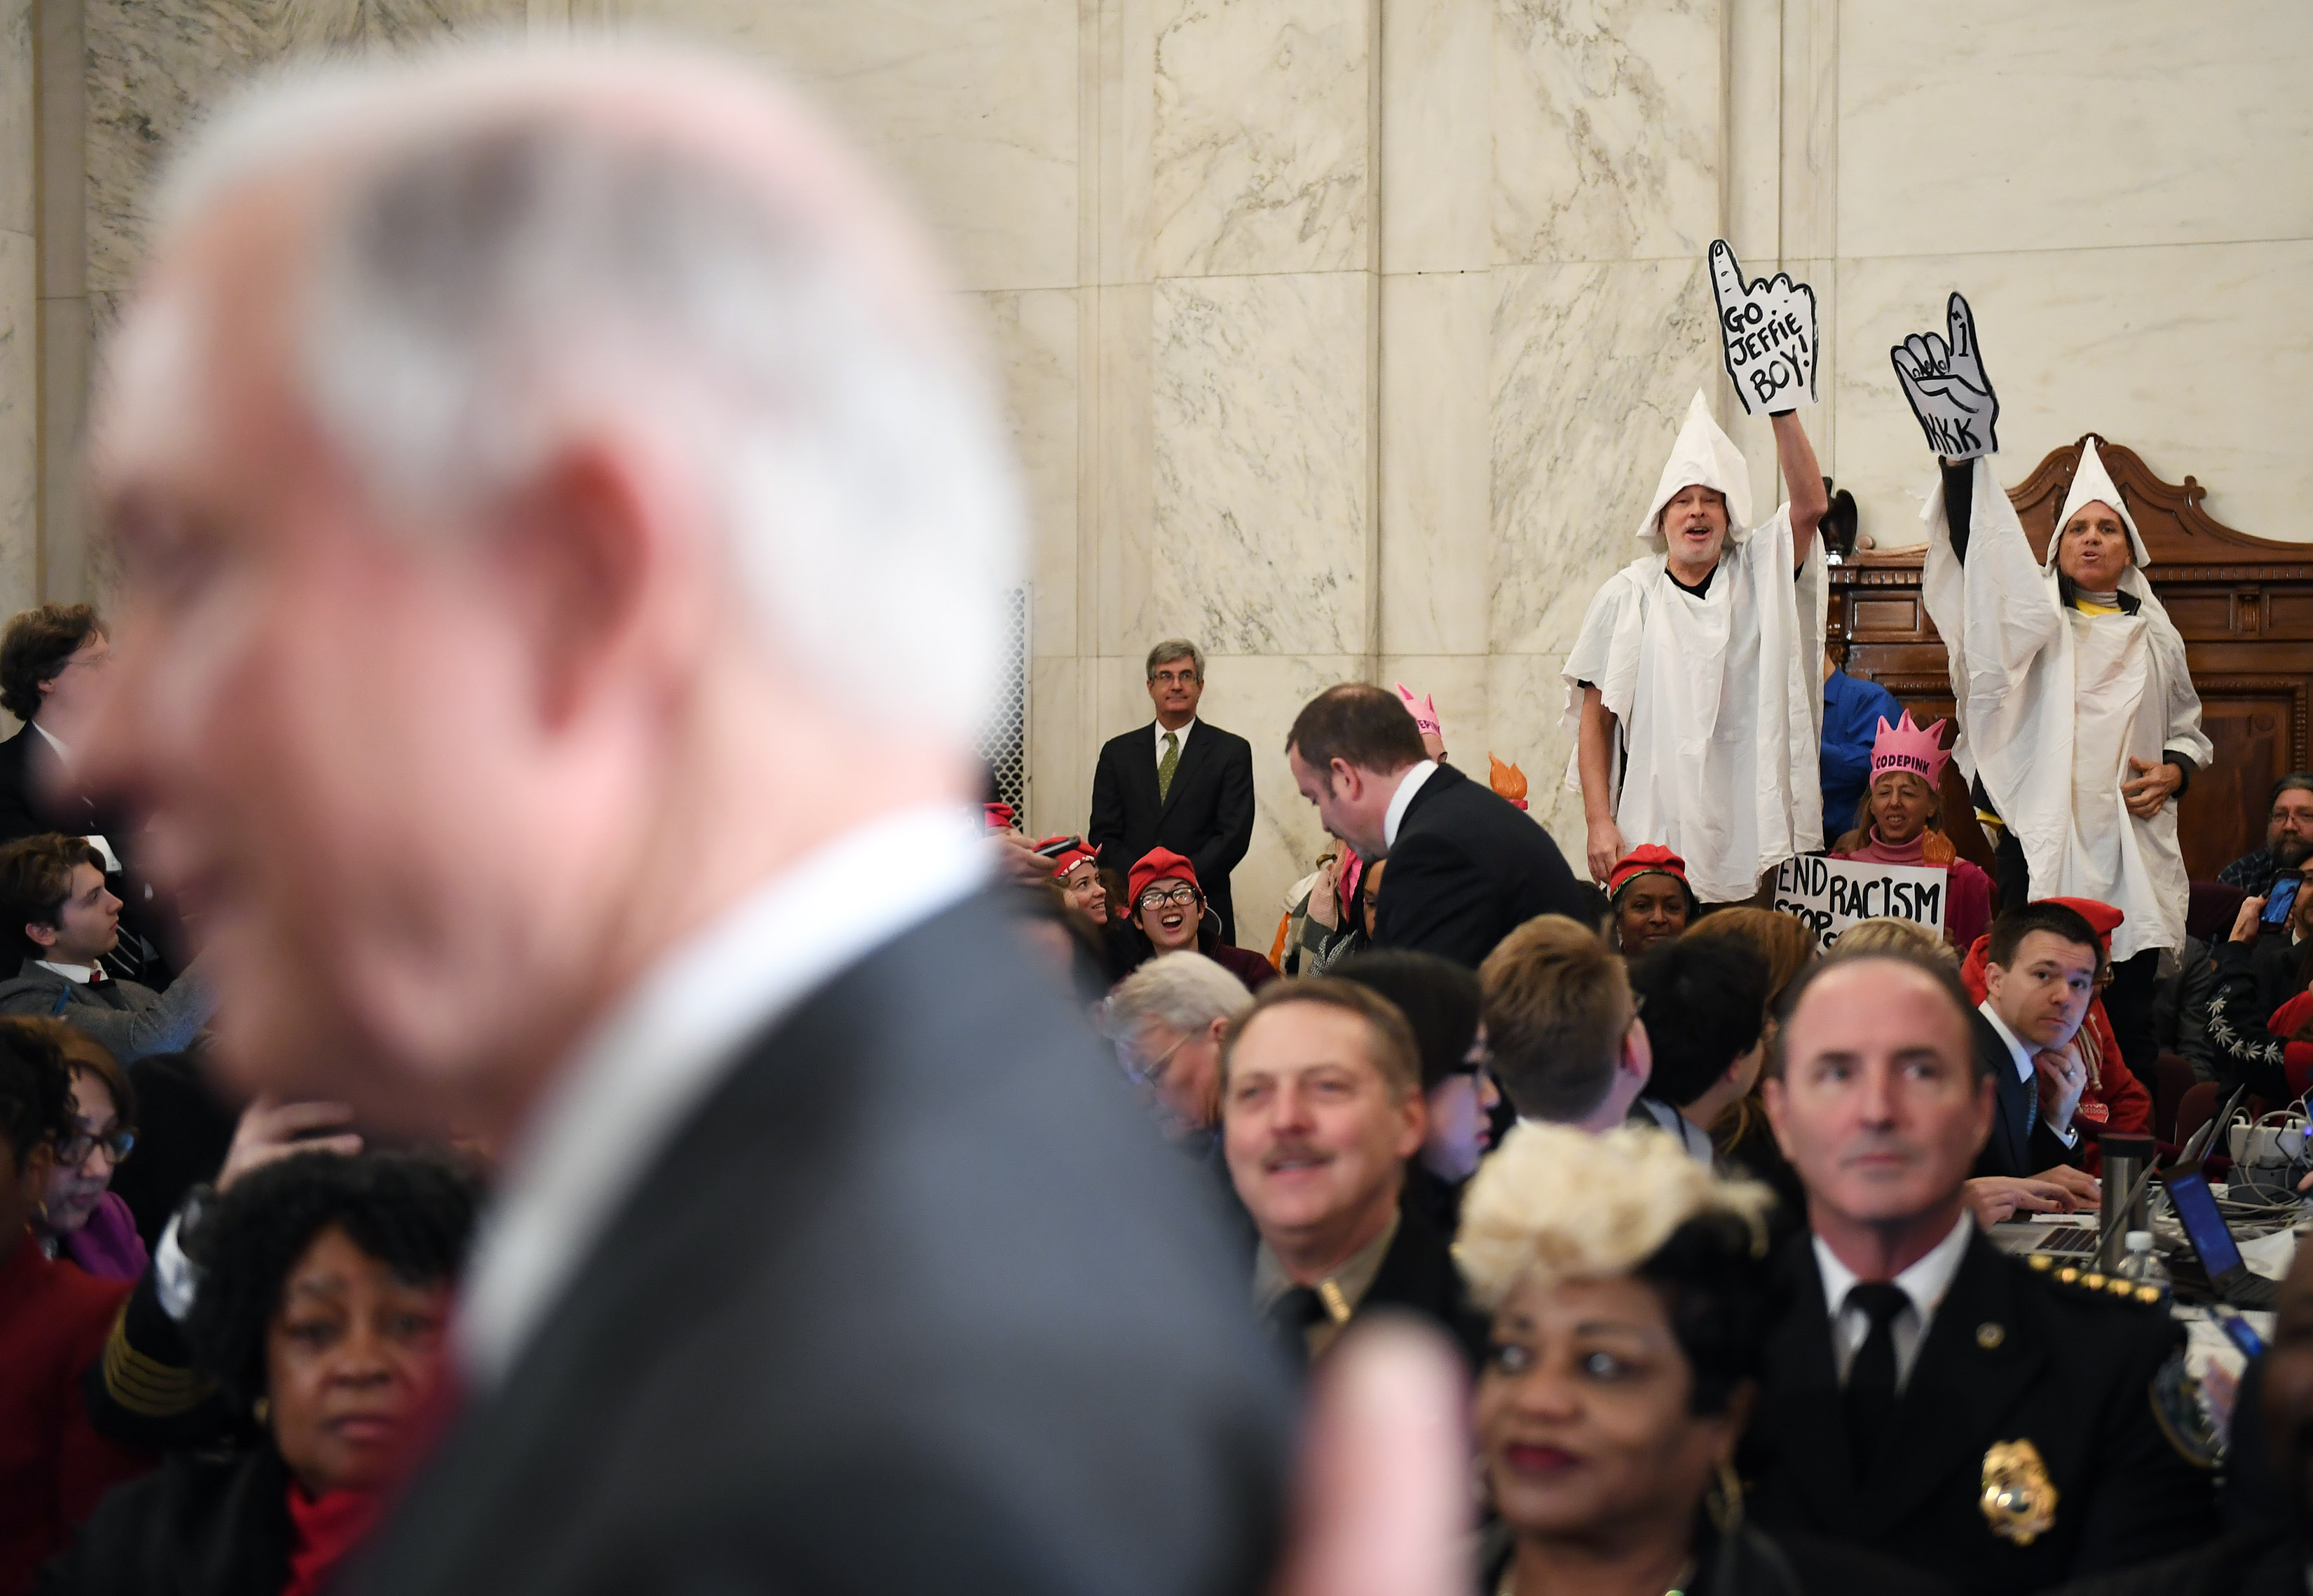 Senator Jeff Sessions (R-AL) is seen before his Attorney General confirmation hearing as Code Pink demonstrators dressed as KKK members stand up and call to the Senator at the Russell Senate Office Building on Tuesday January 10, 2017 in Washington, DC.